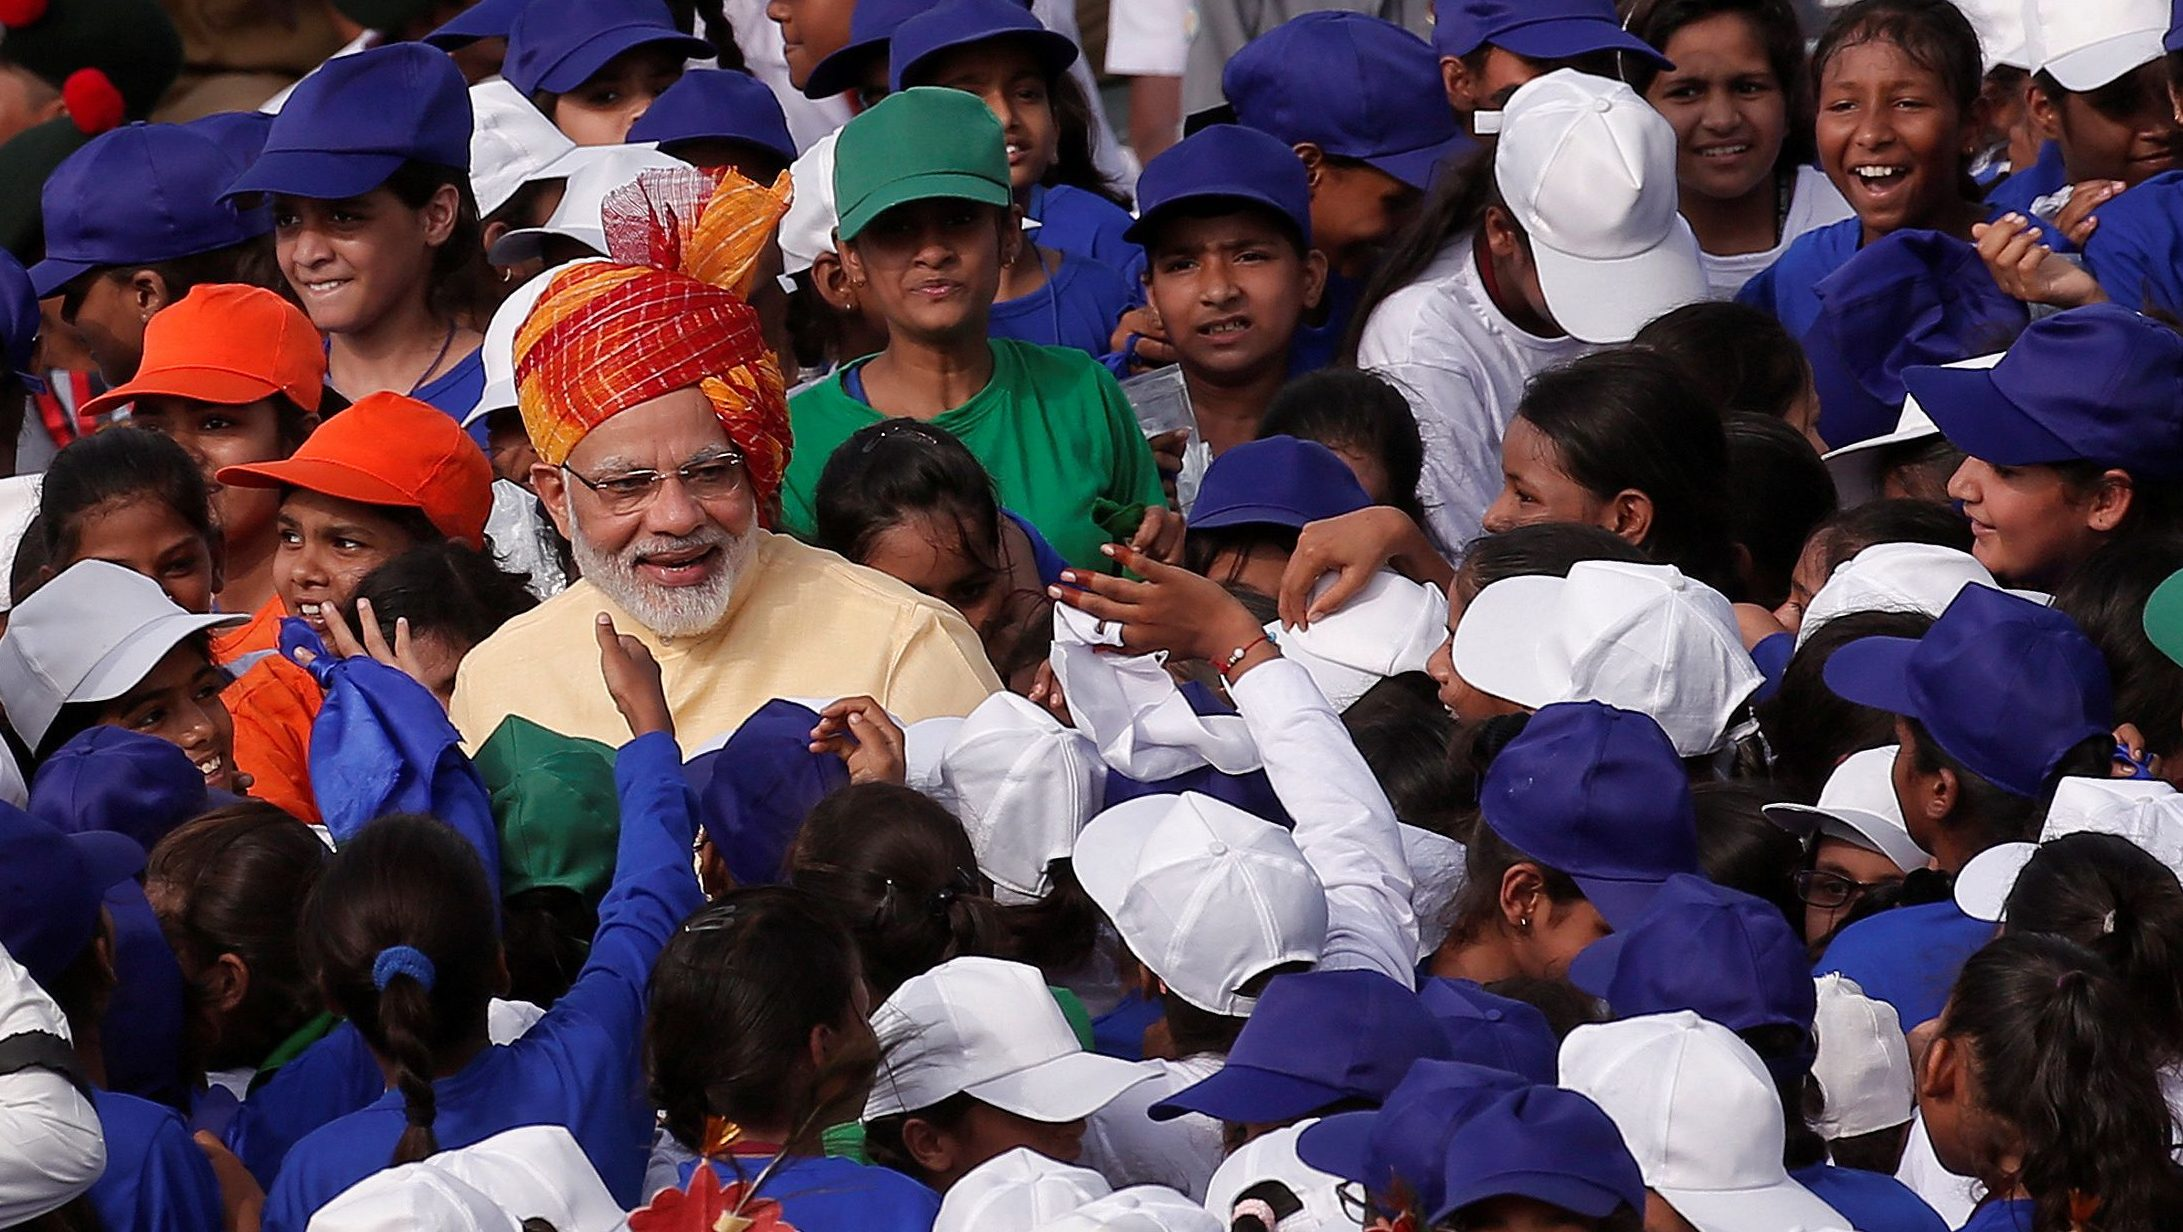 Indian Prime Minister Narendra Modi greets school children after addressing the nation from the historic Red Fort during Independence Day celebrations in Delhi, India August 15, 2017. REUTERS/Adnan Abidi     TPX IMAGES OF THE DAY - RC1124D0BC90